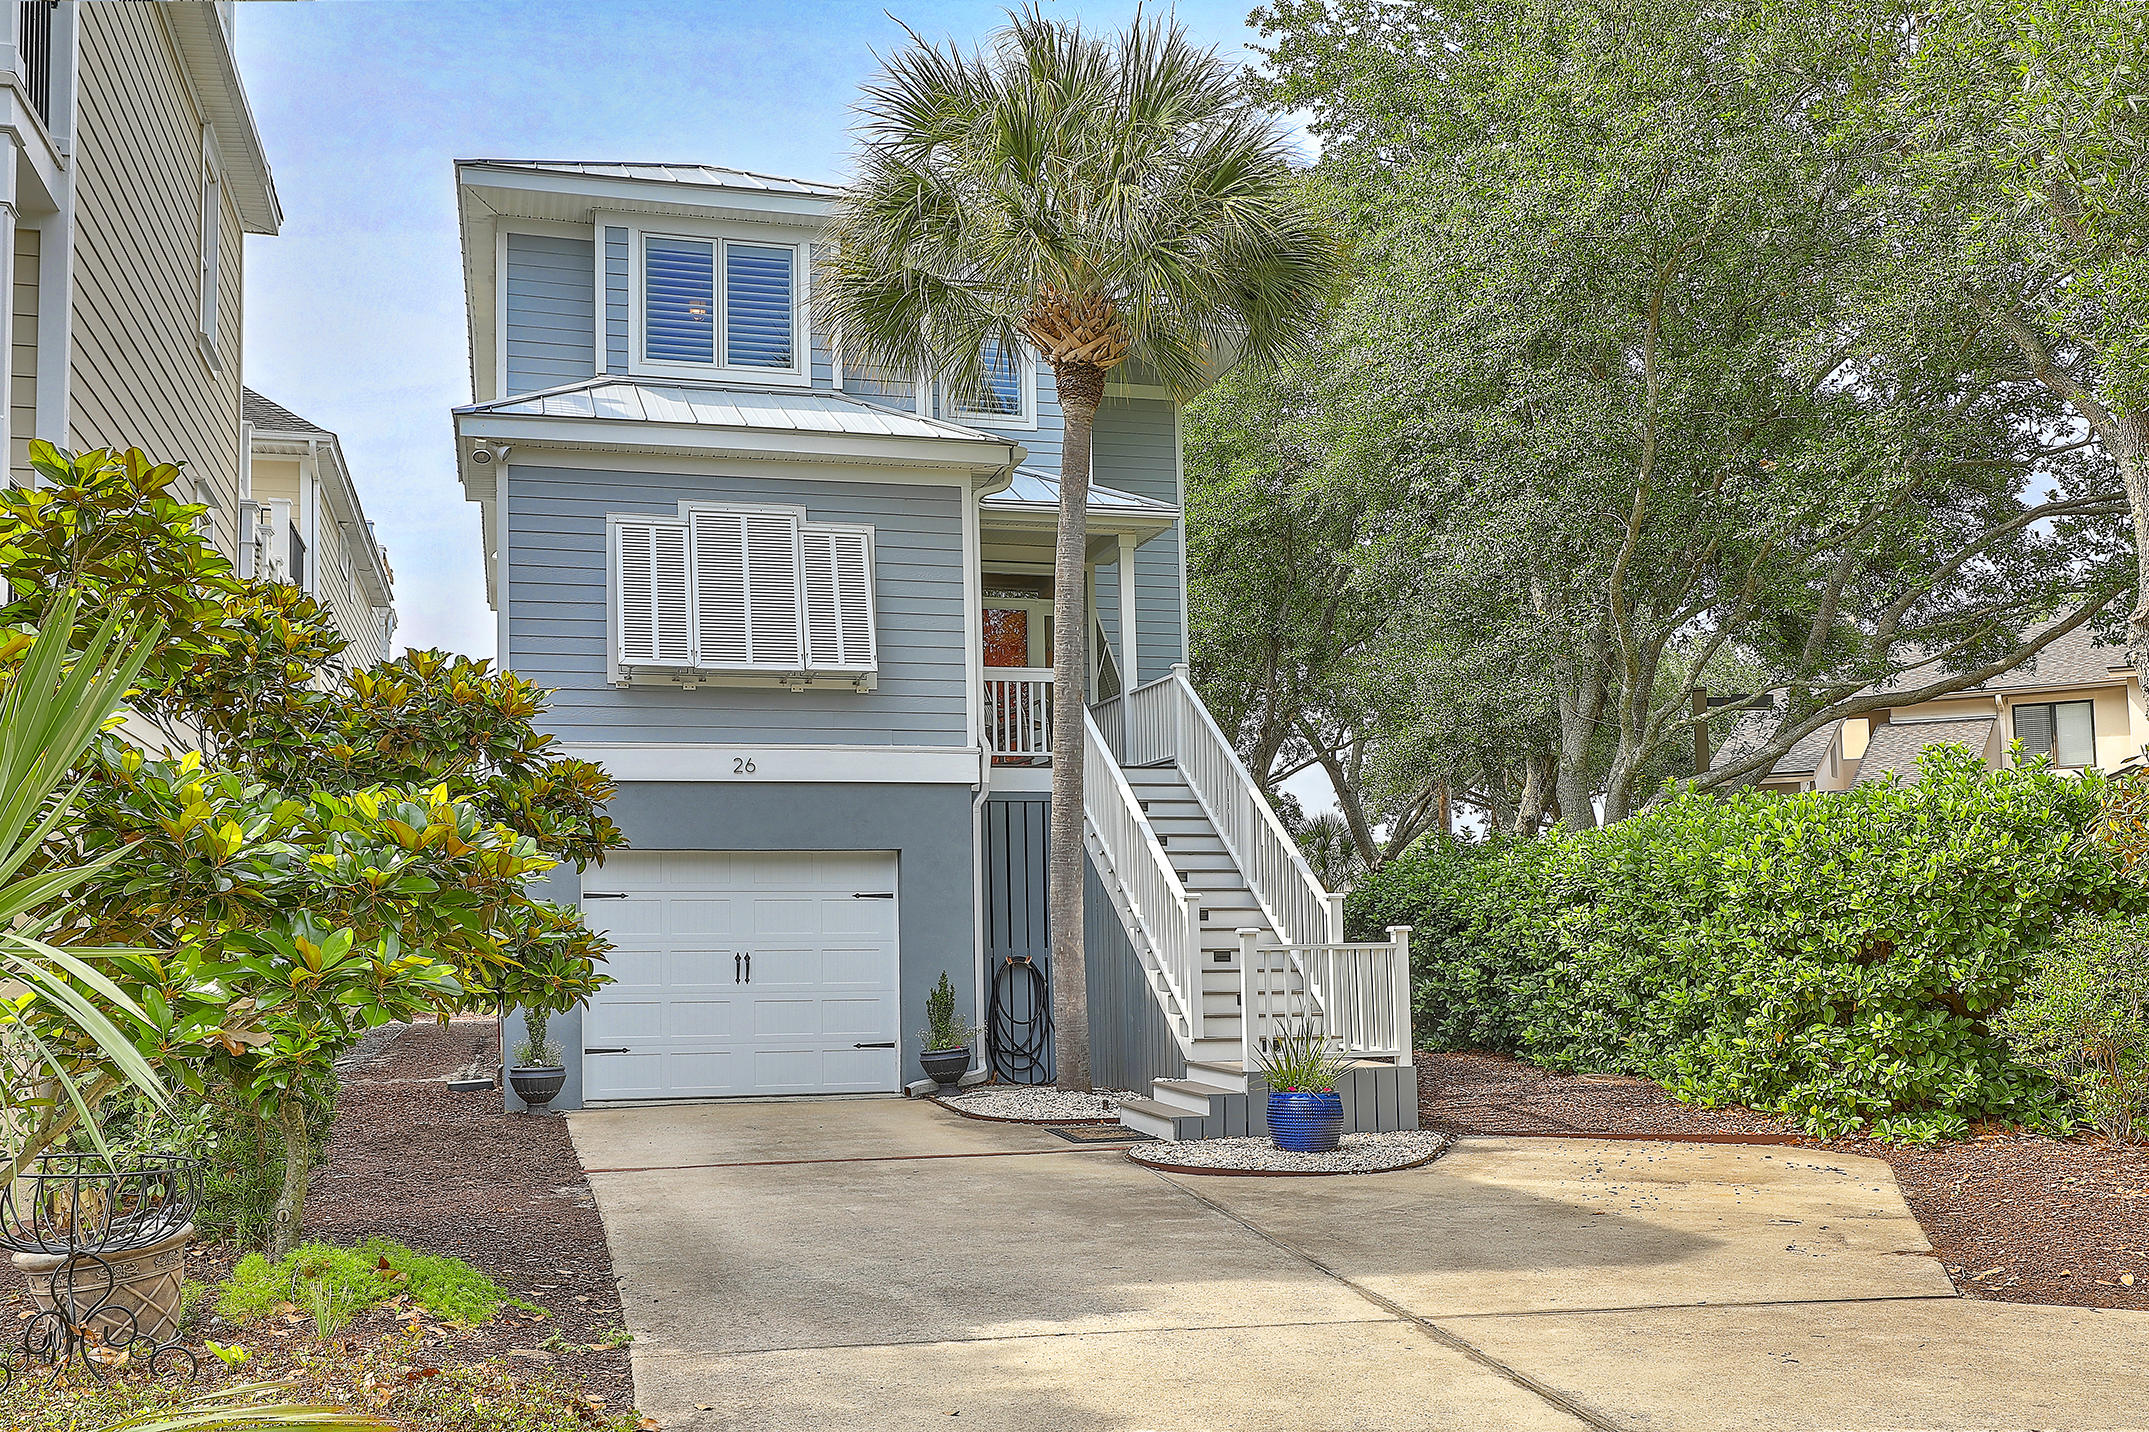 Wild Dunes Homes For Sale - 26 Yacht Harbor, Isle of Palms, SC - 27